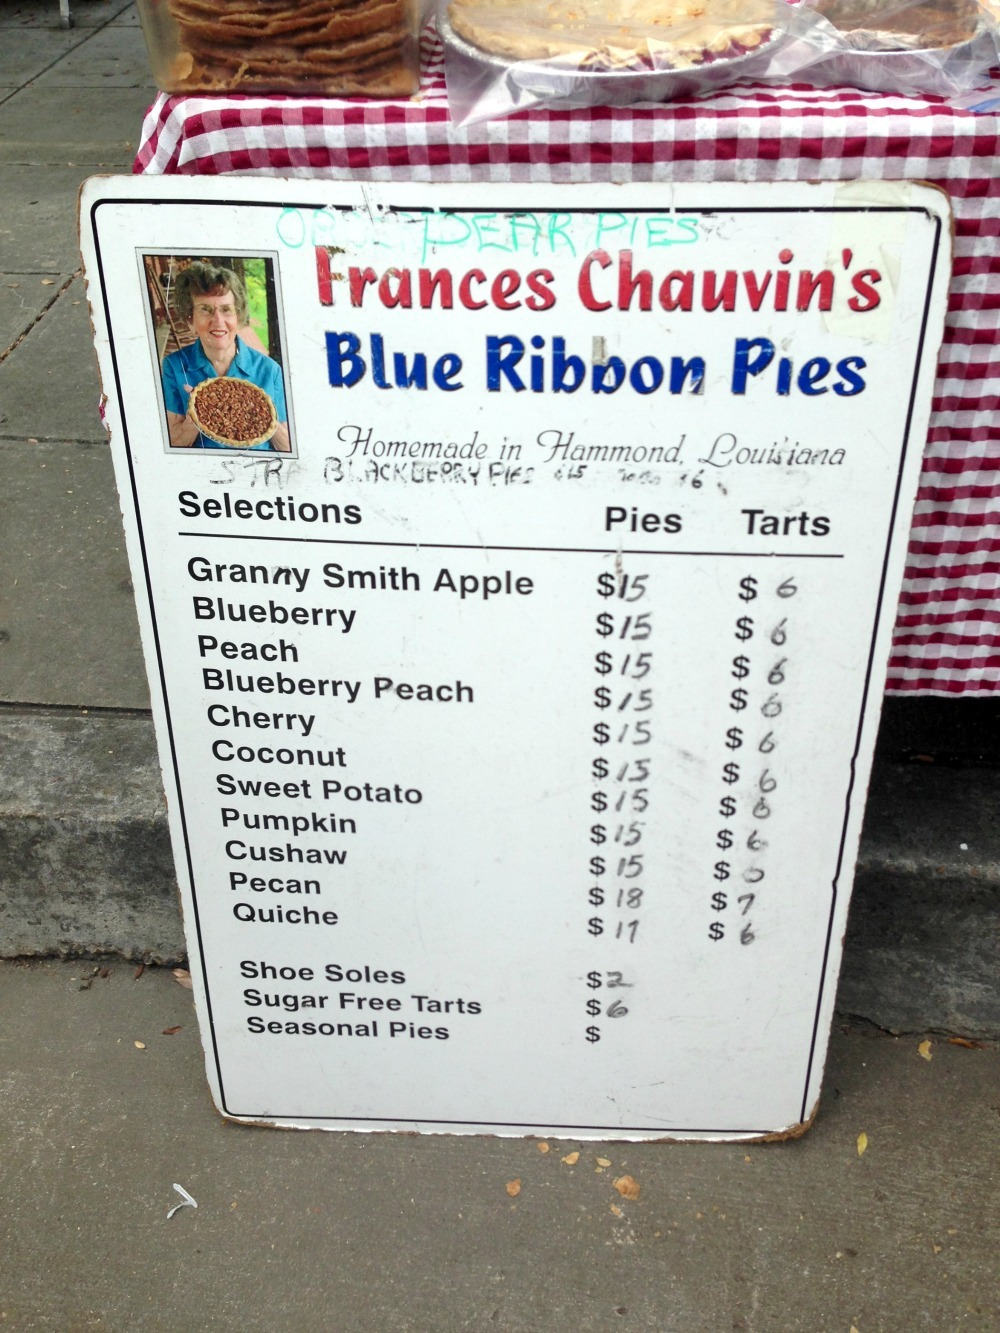 Frances Chauvins Blue Robbon Pies